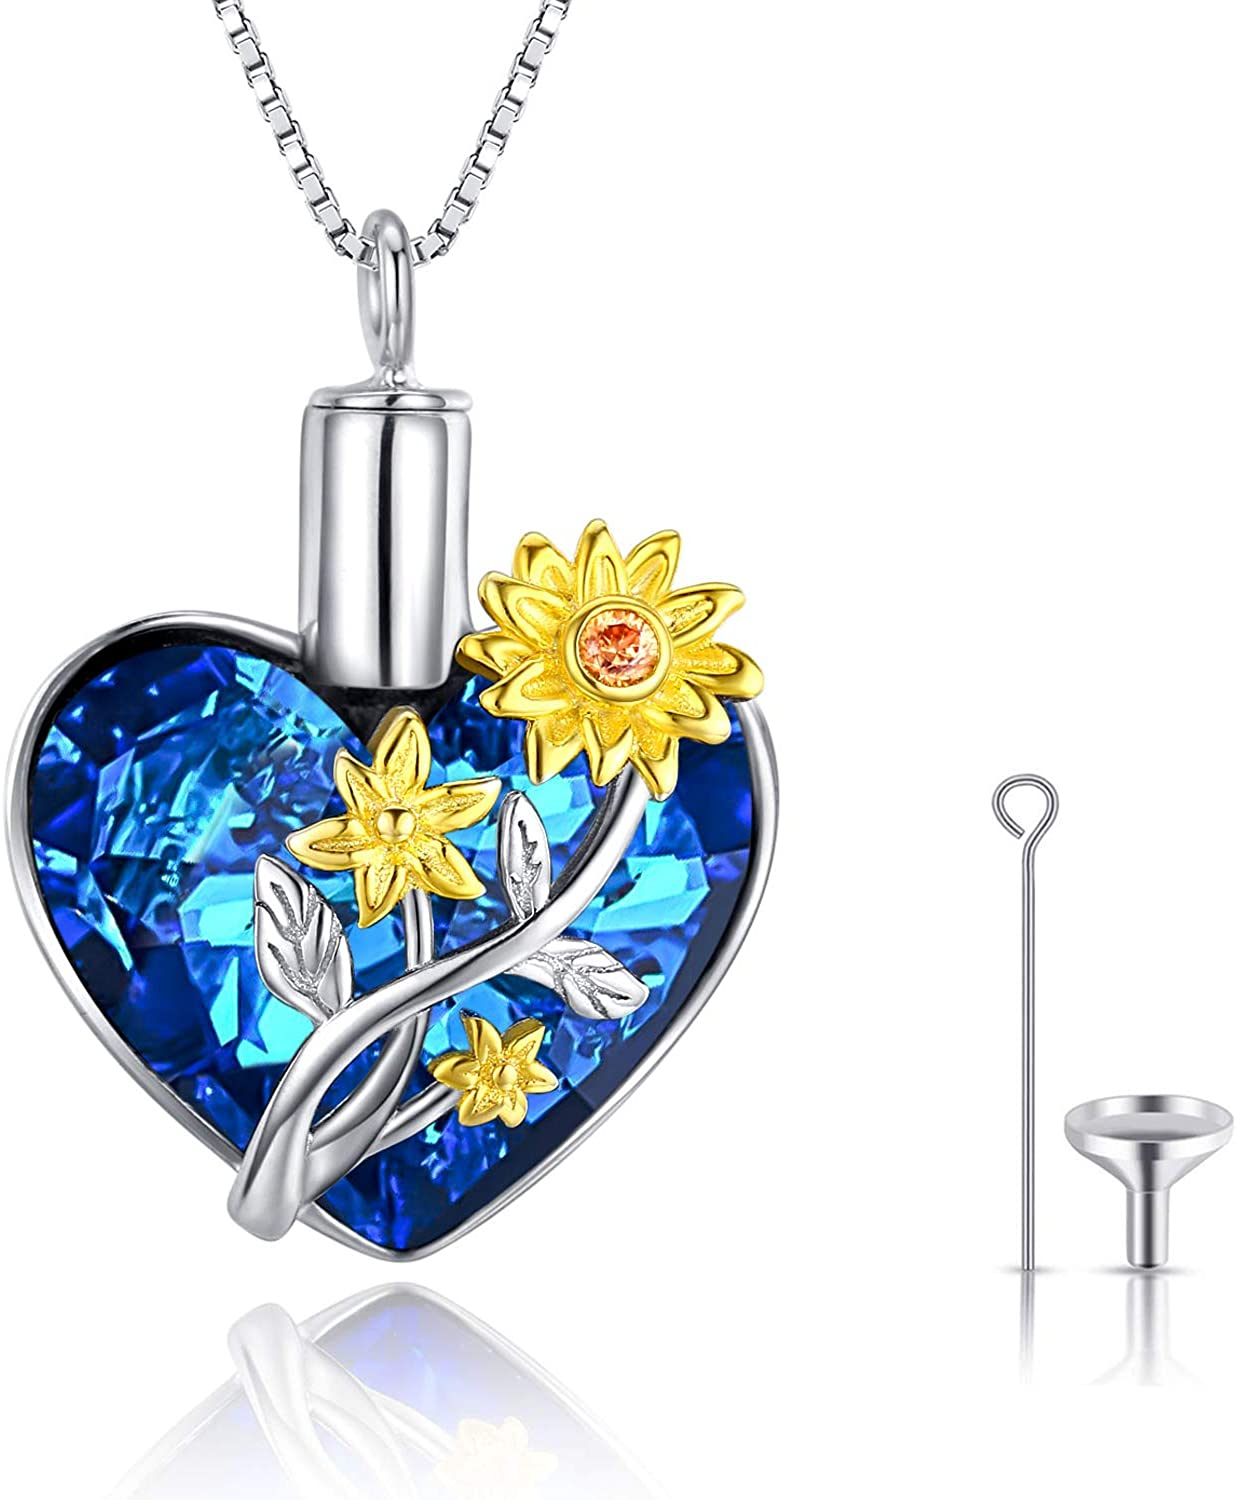 JUSTKIDSTOY Cremation Jewelry for lowest price Ashes Sunf Industry No. 1 925 Sterling Silver